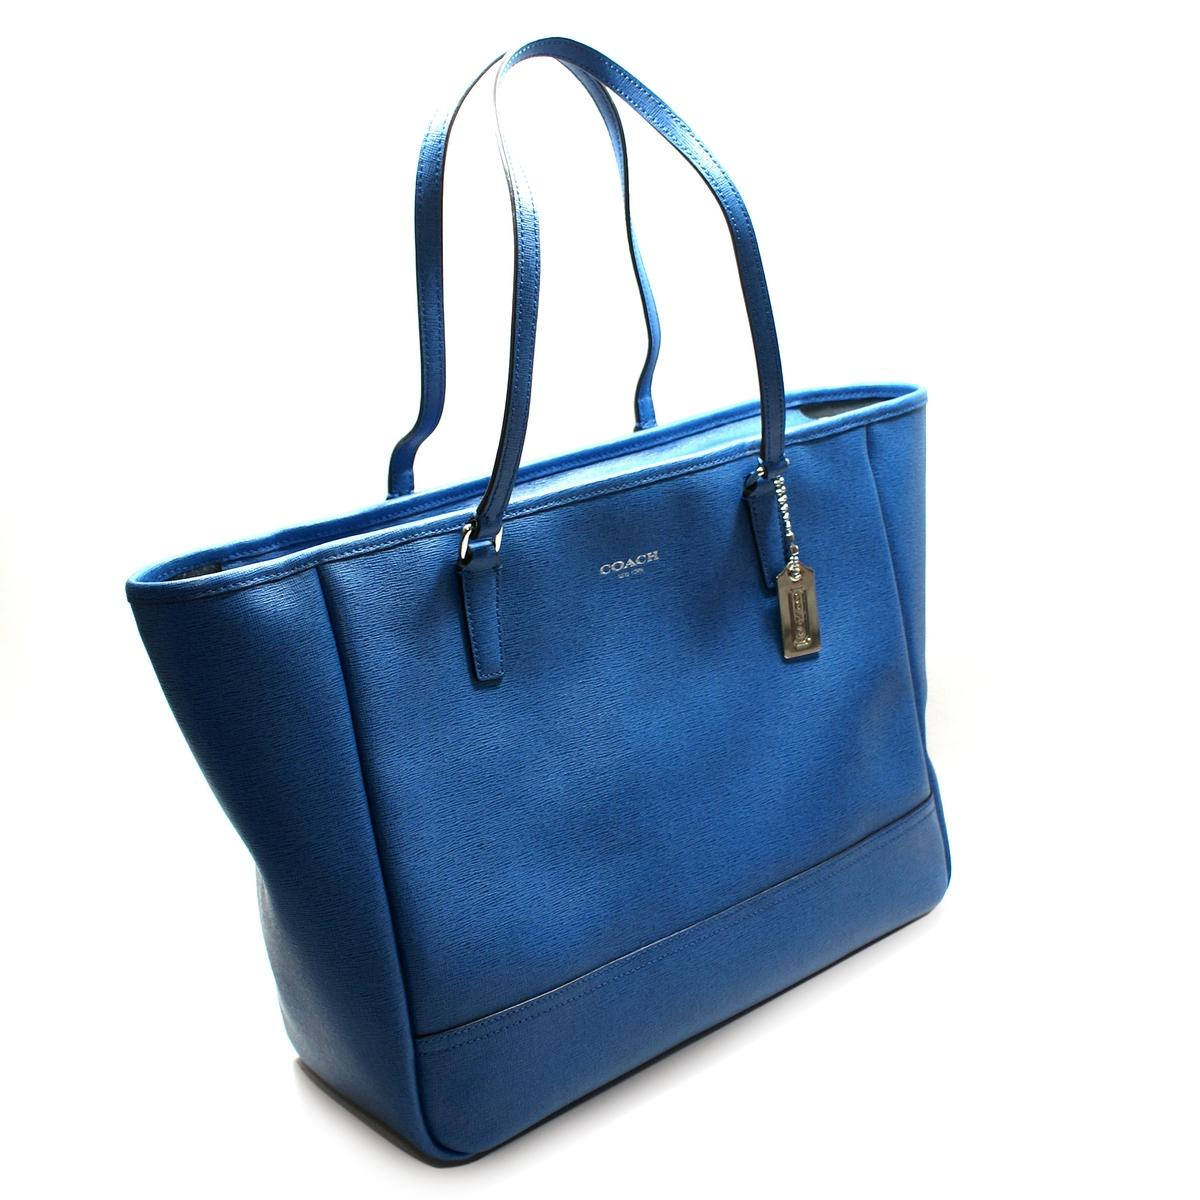 Home Coach Saffiano Leather Medium East West Tote Bag Cobalt Blue